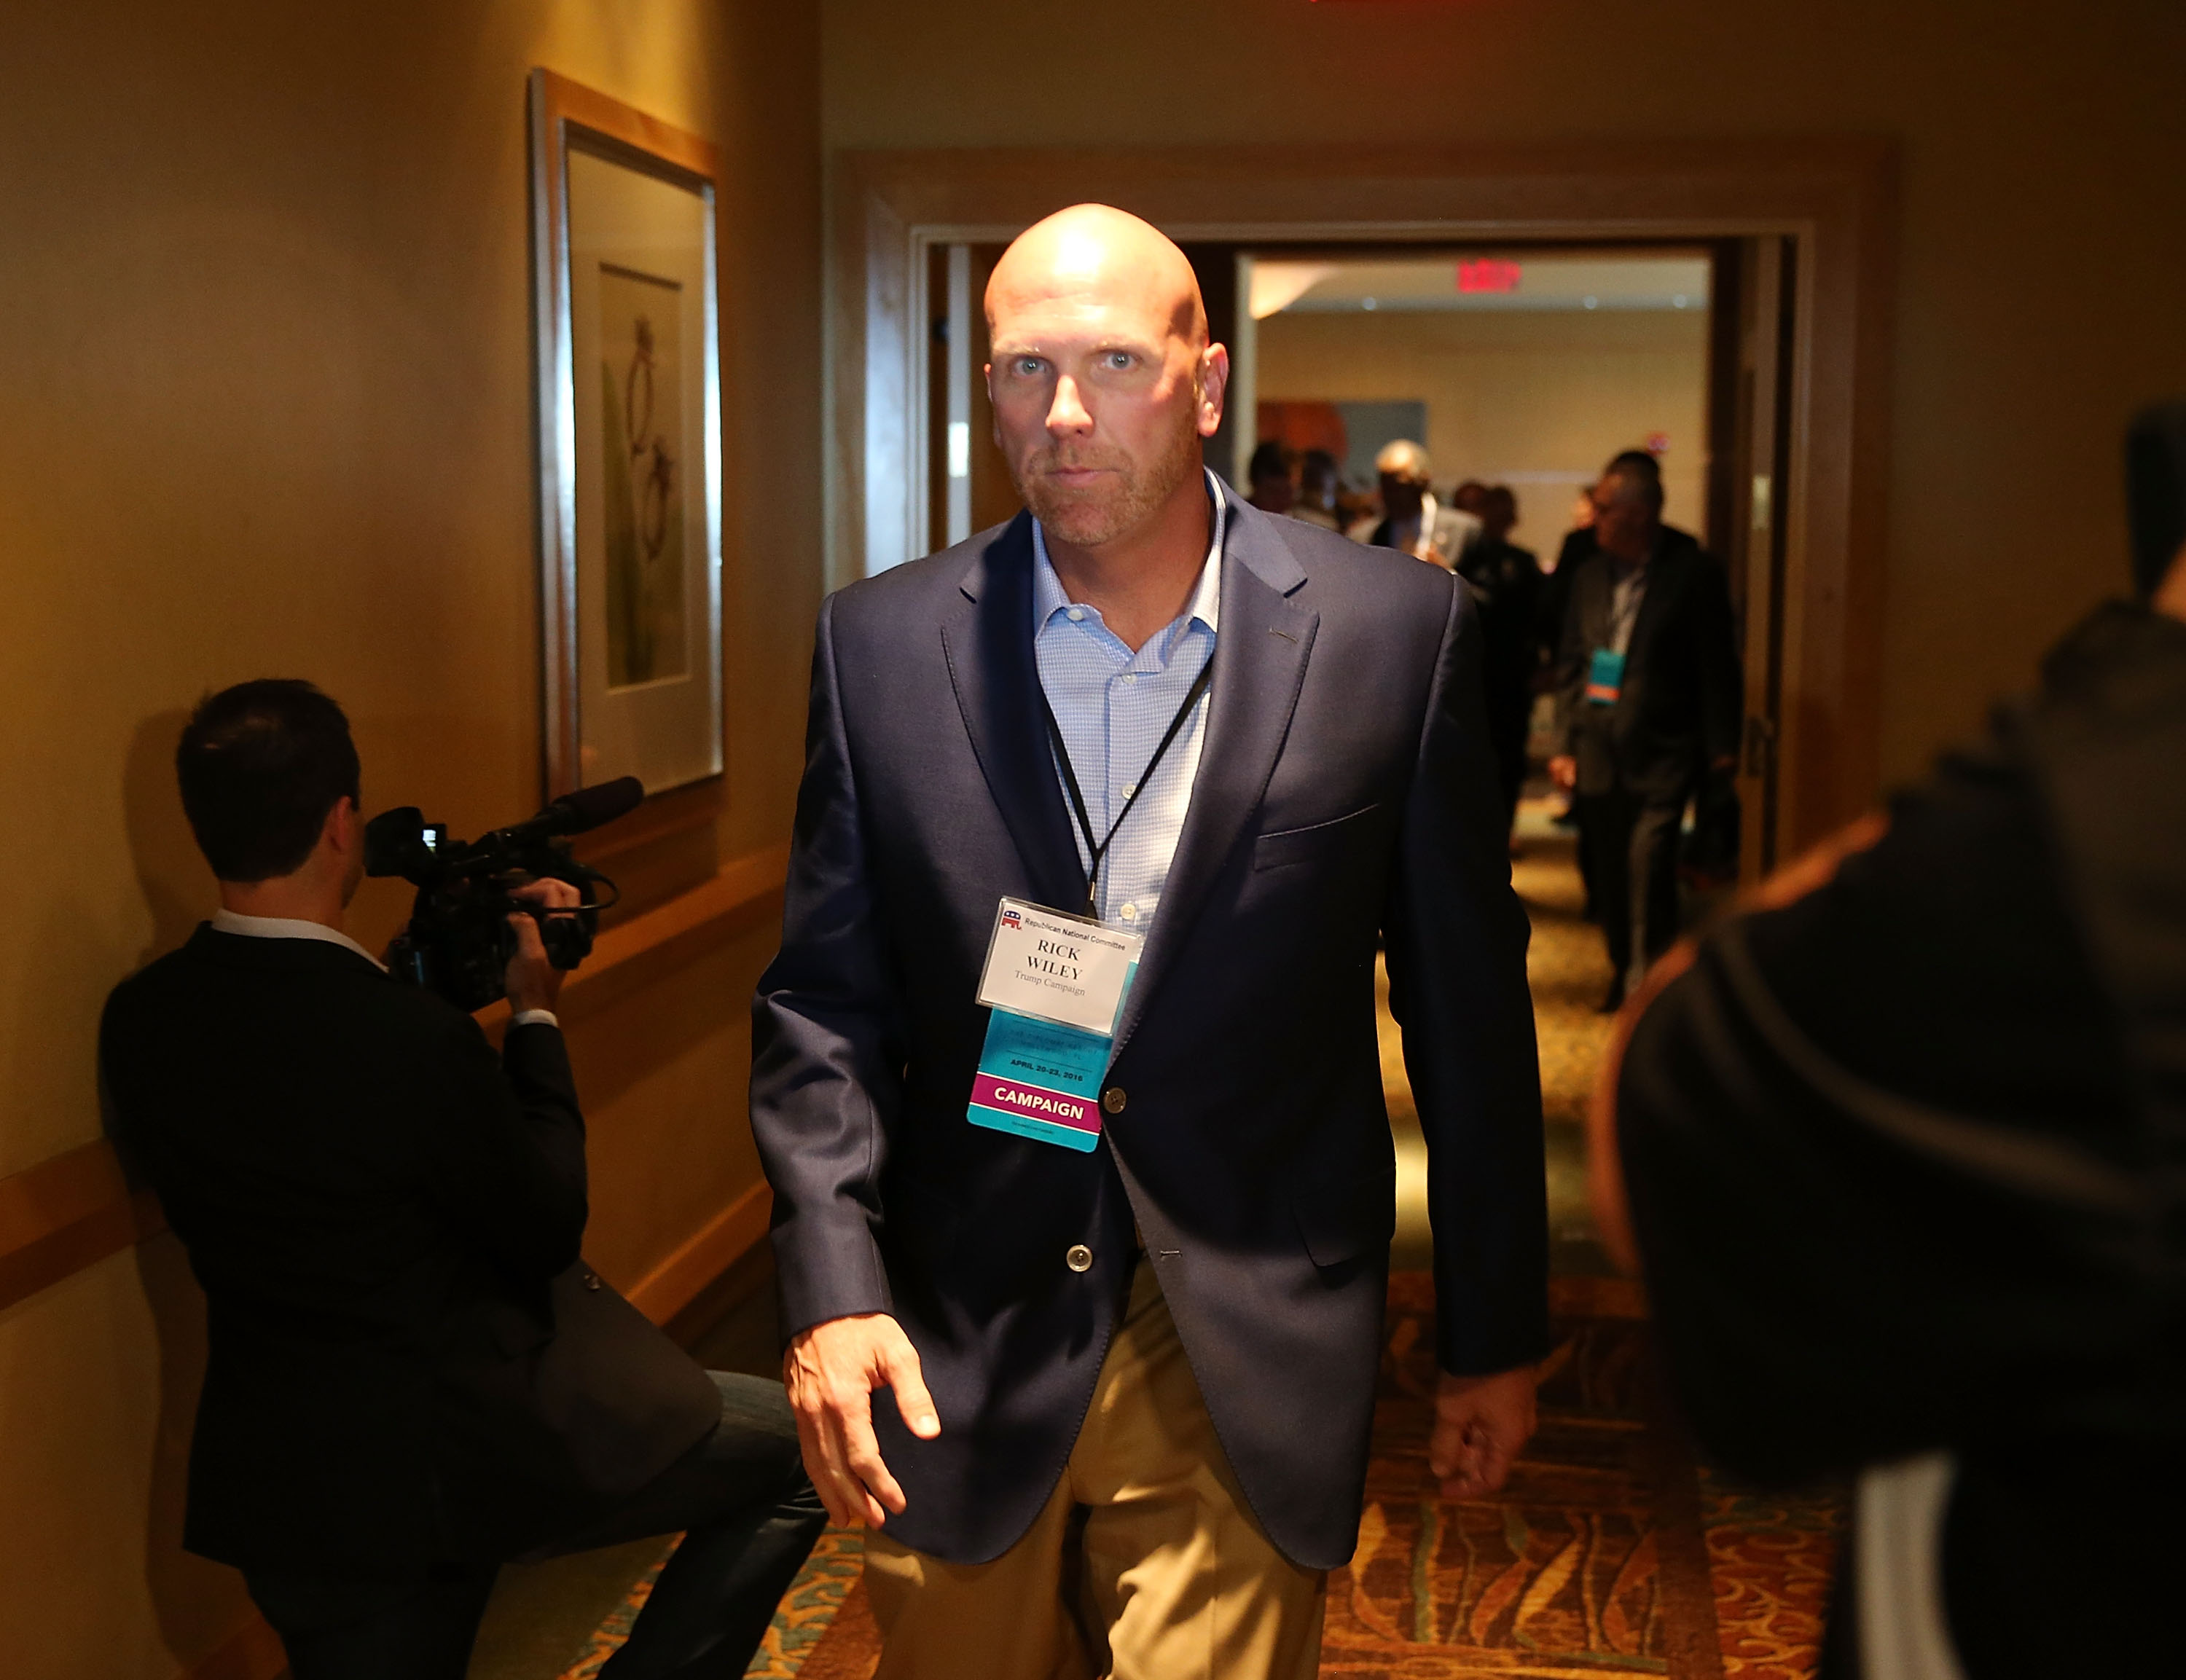 Republican presidential candidate Donald Trump's political strategist Rick Wiley arrives for a reception during the Republican National Committee Spring meeting on April 21, 2016 in Florida.